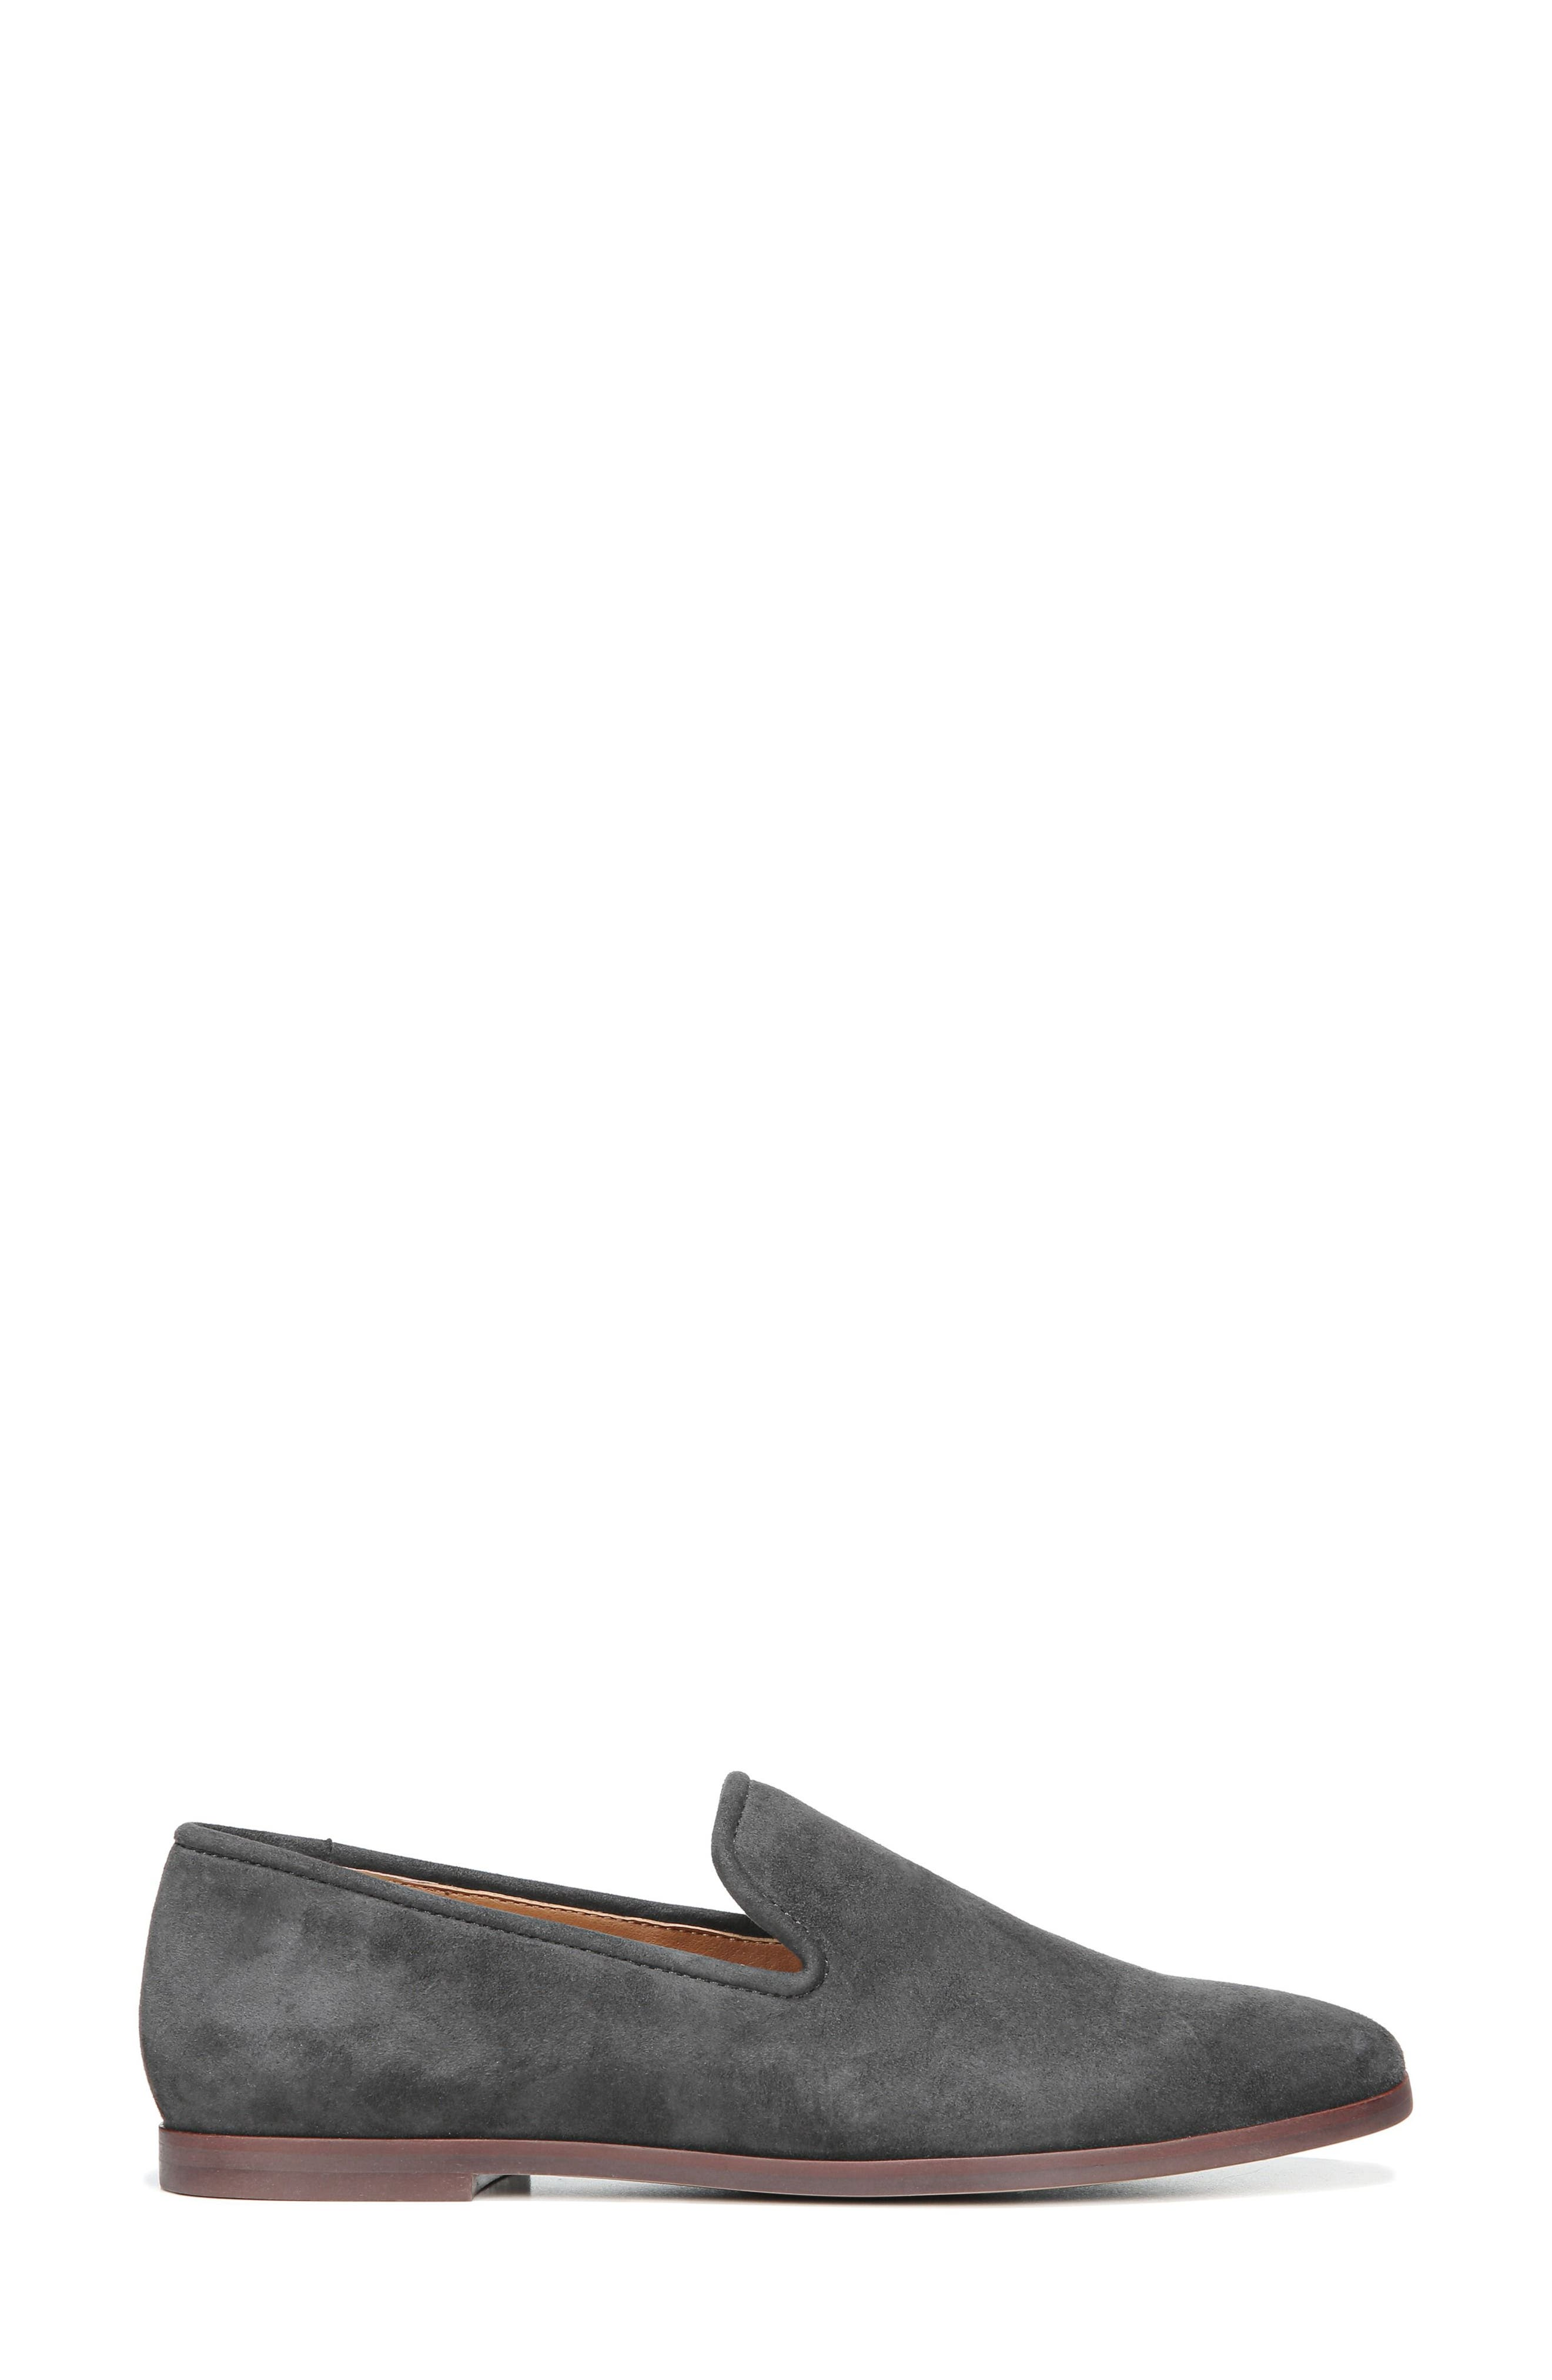 Ayers Loafer Flat,                             Alternate thumbnail 22, color,